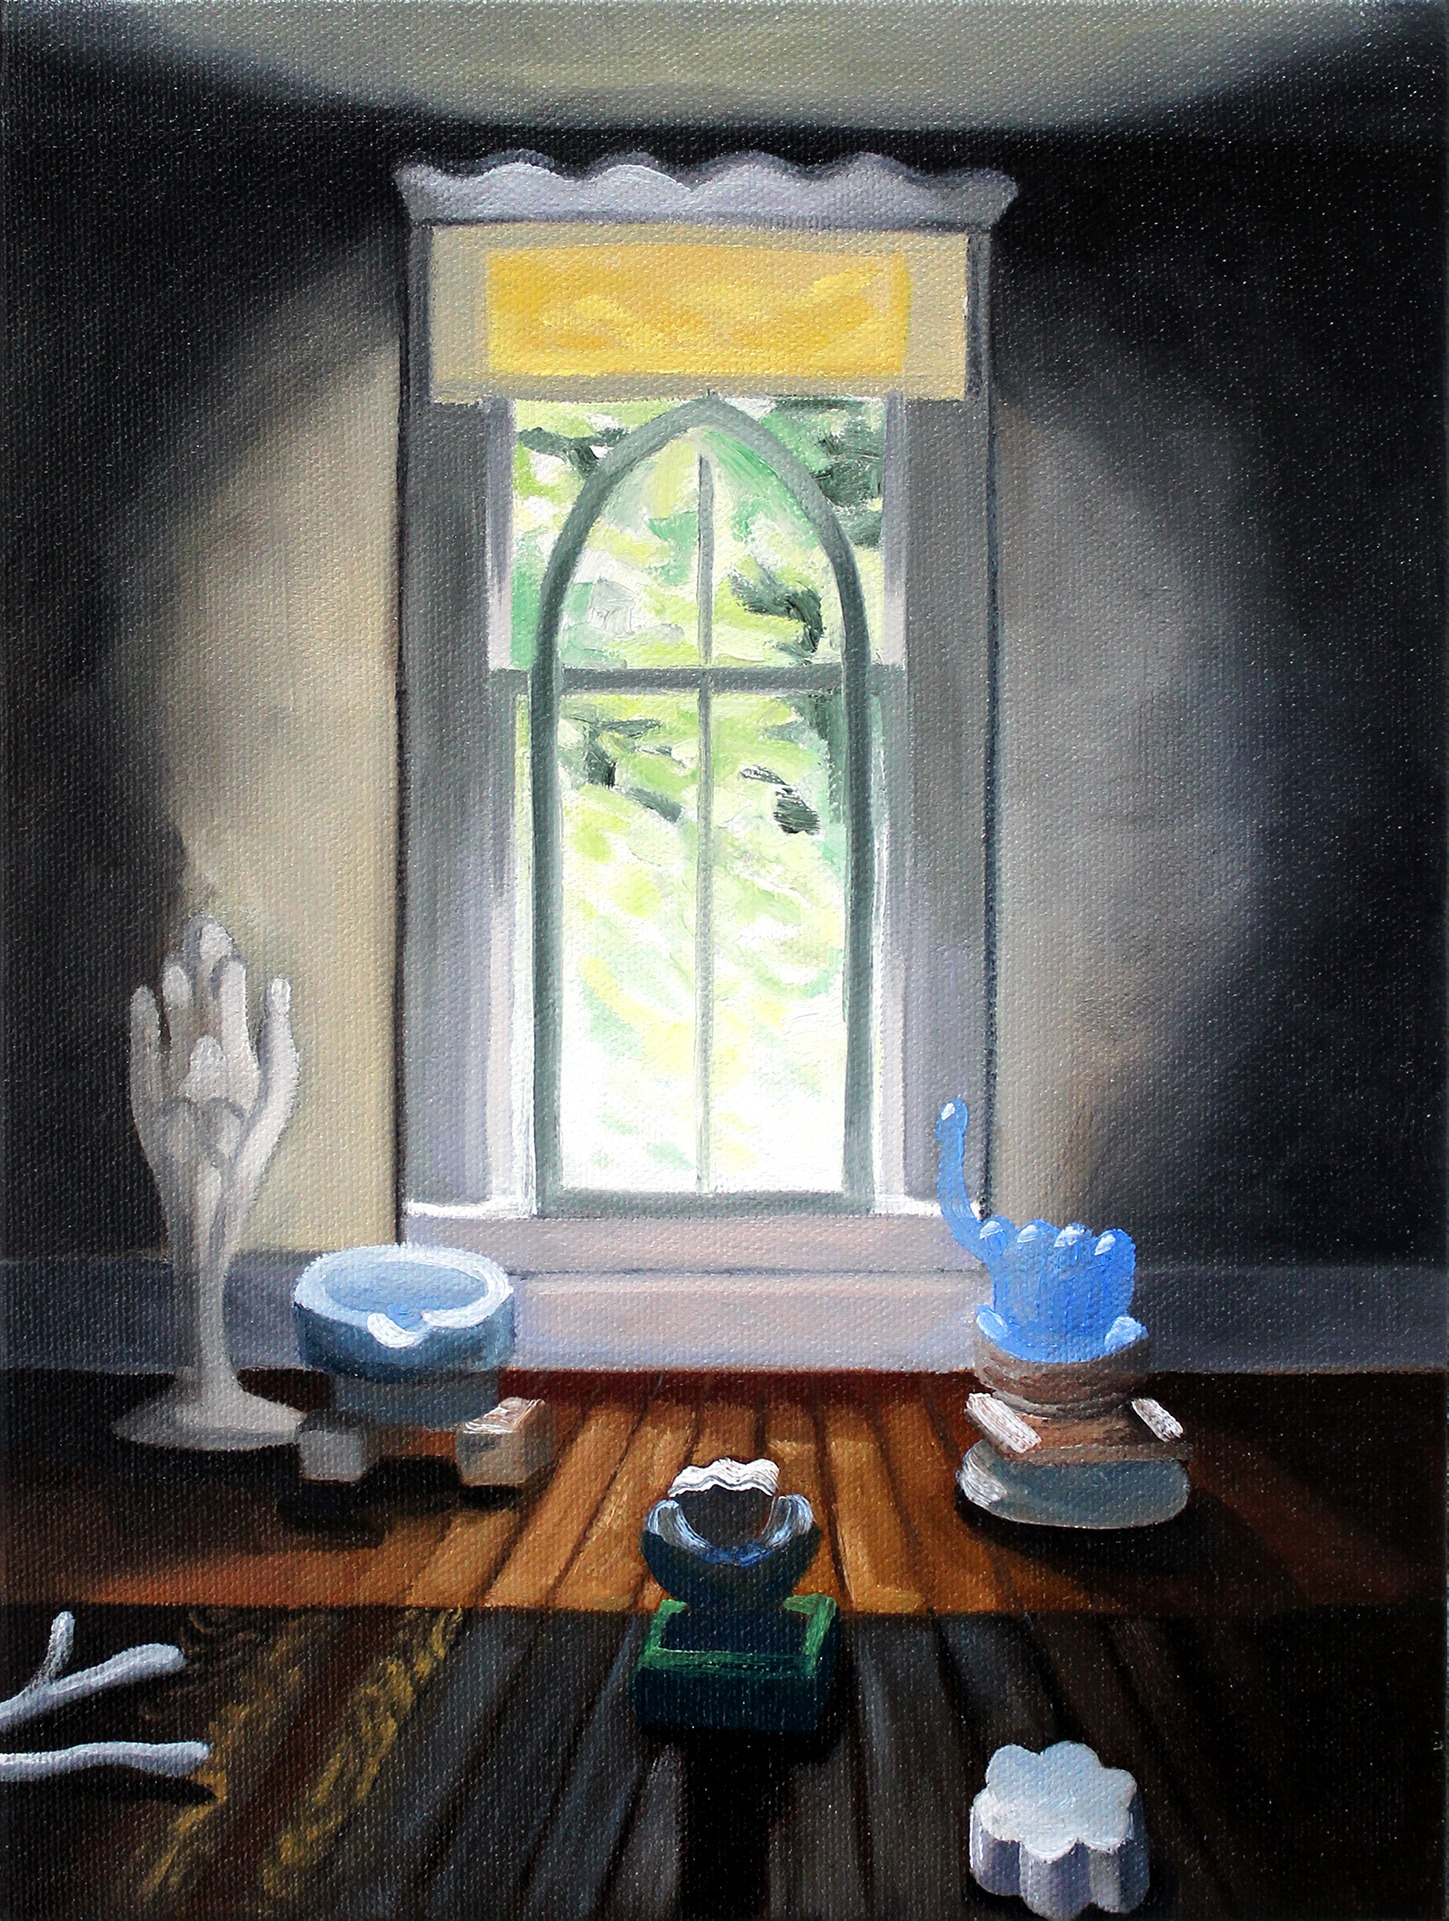 A painting by Lina Tharsing titled Goodlett's Studio, dated 2021.